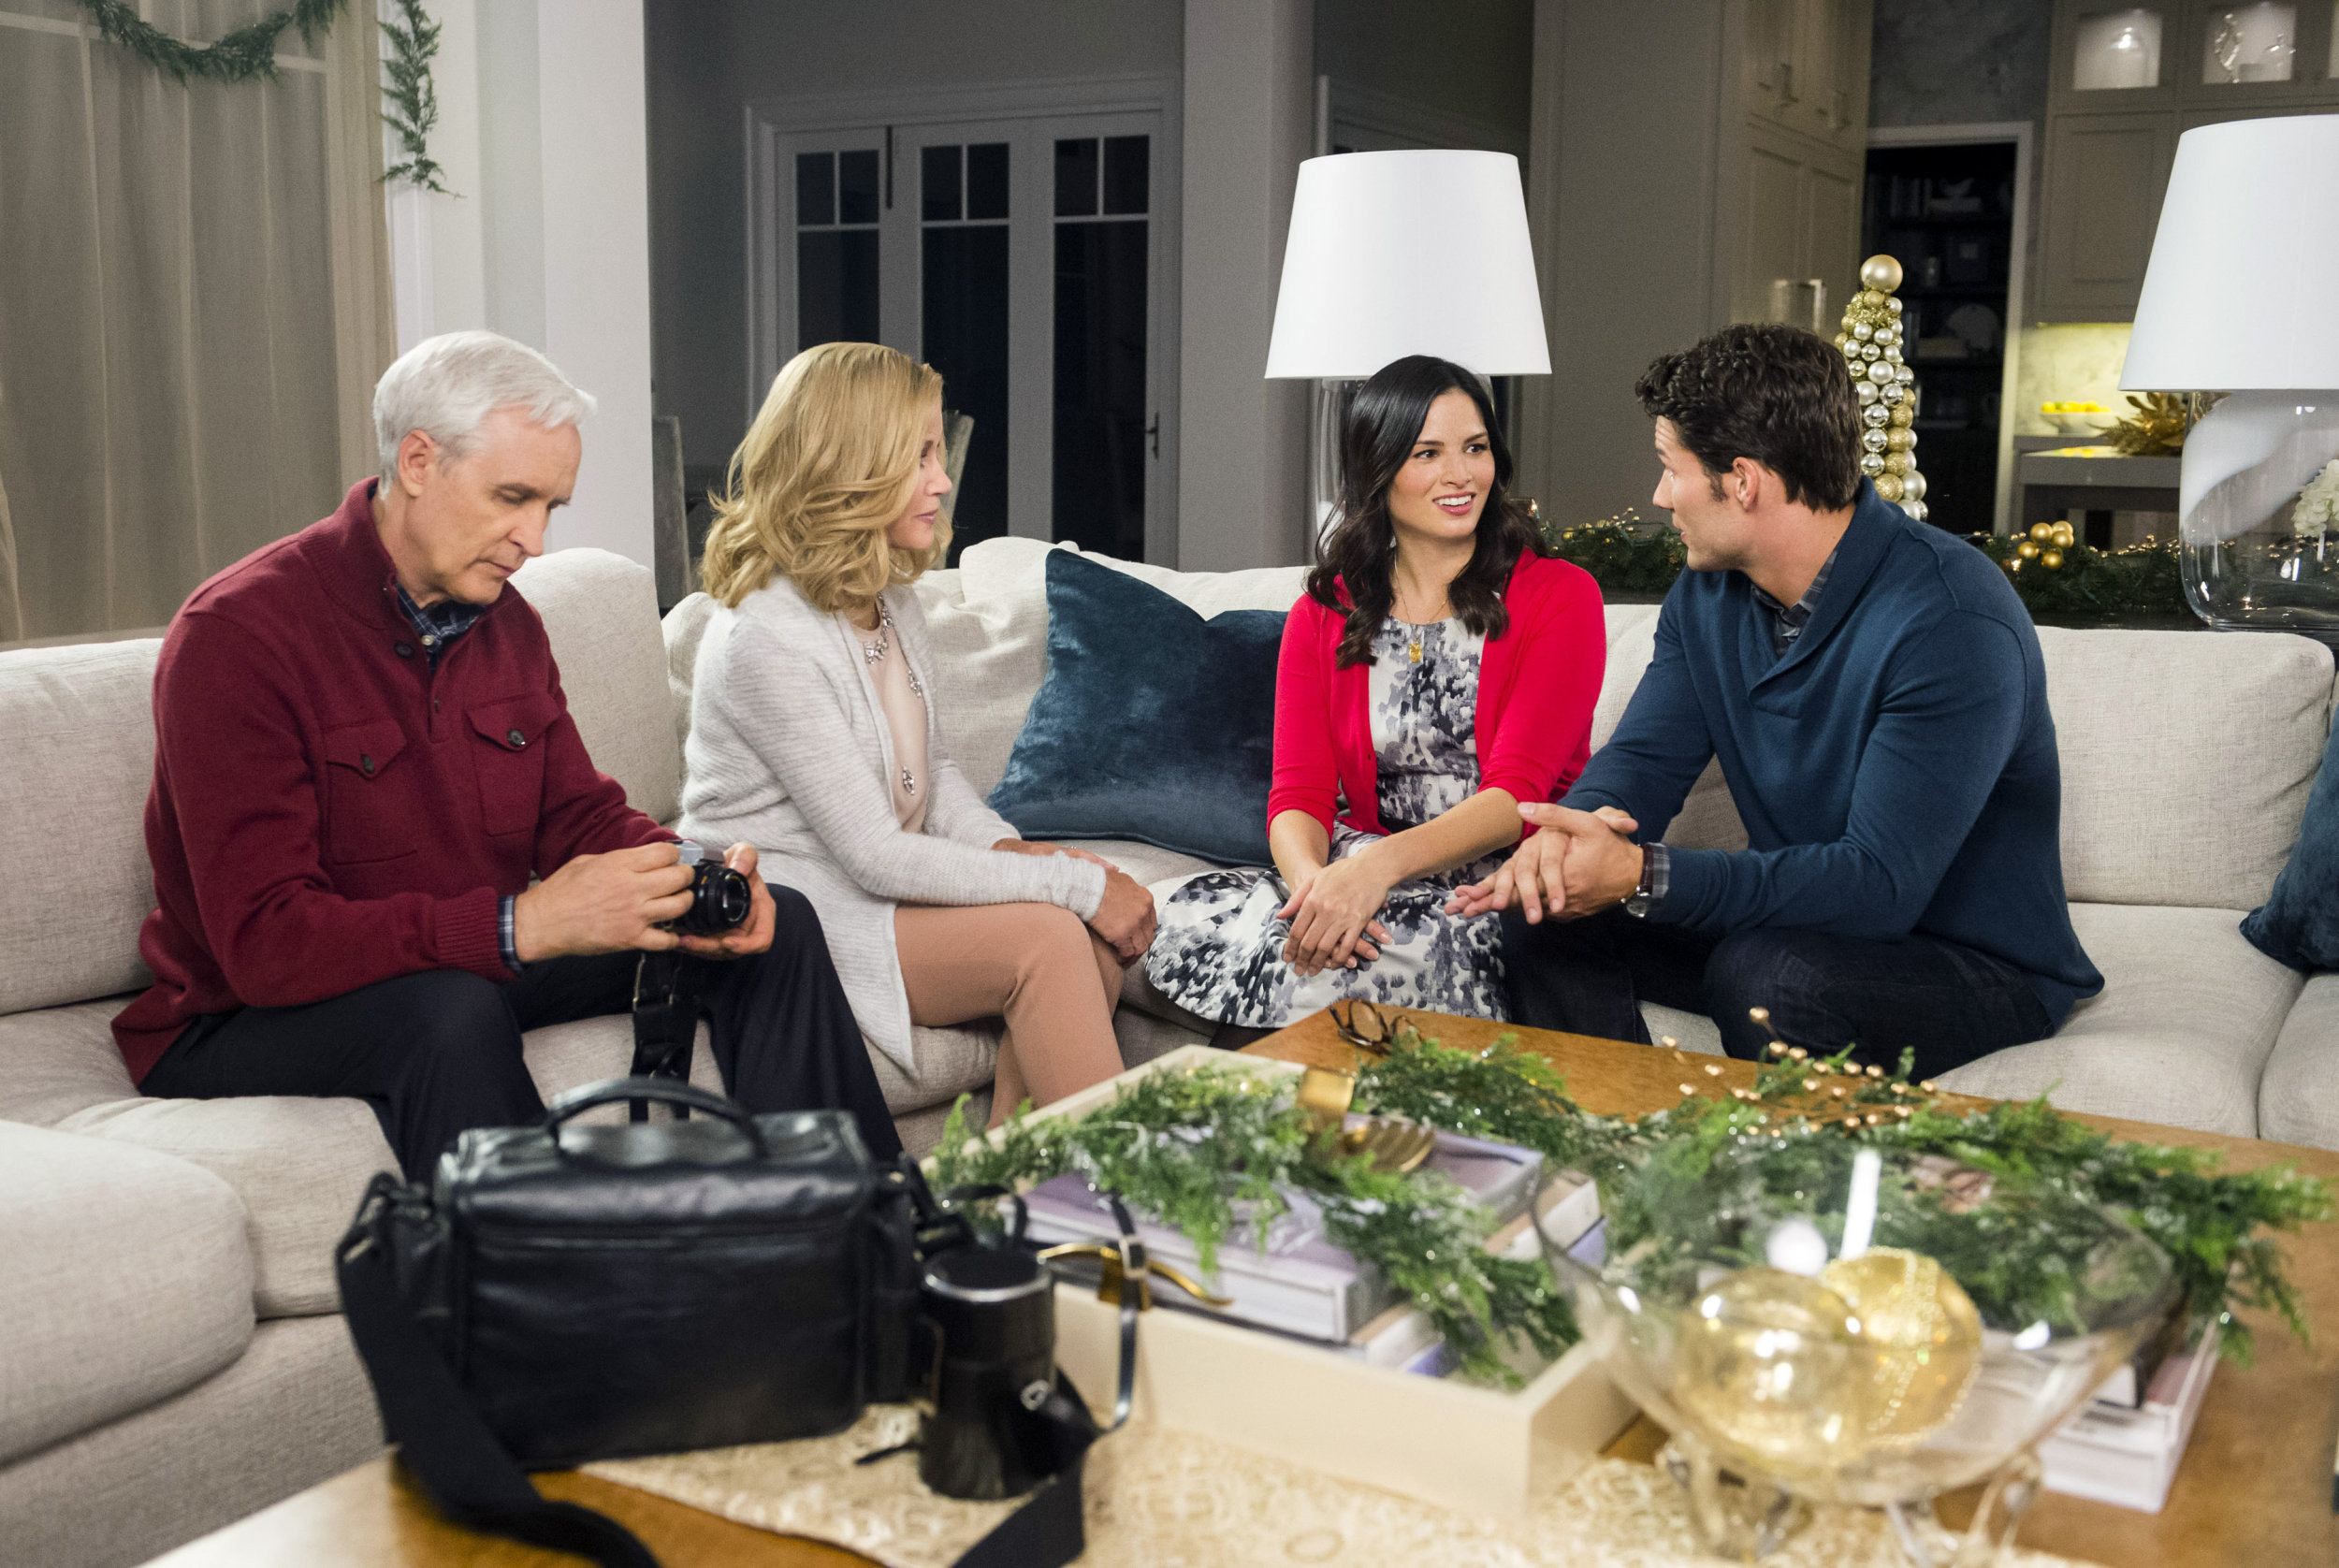 Full cast hallmark movie 12 gifts of christmas